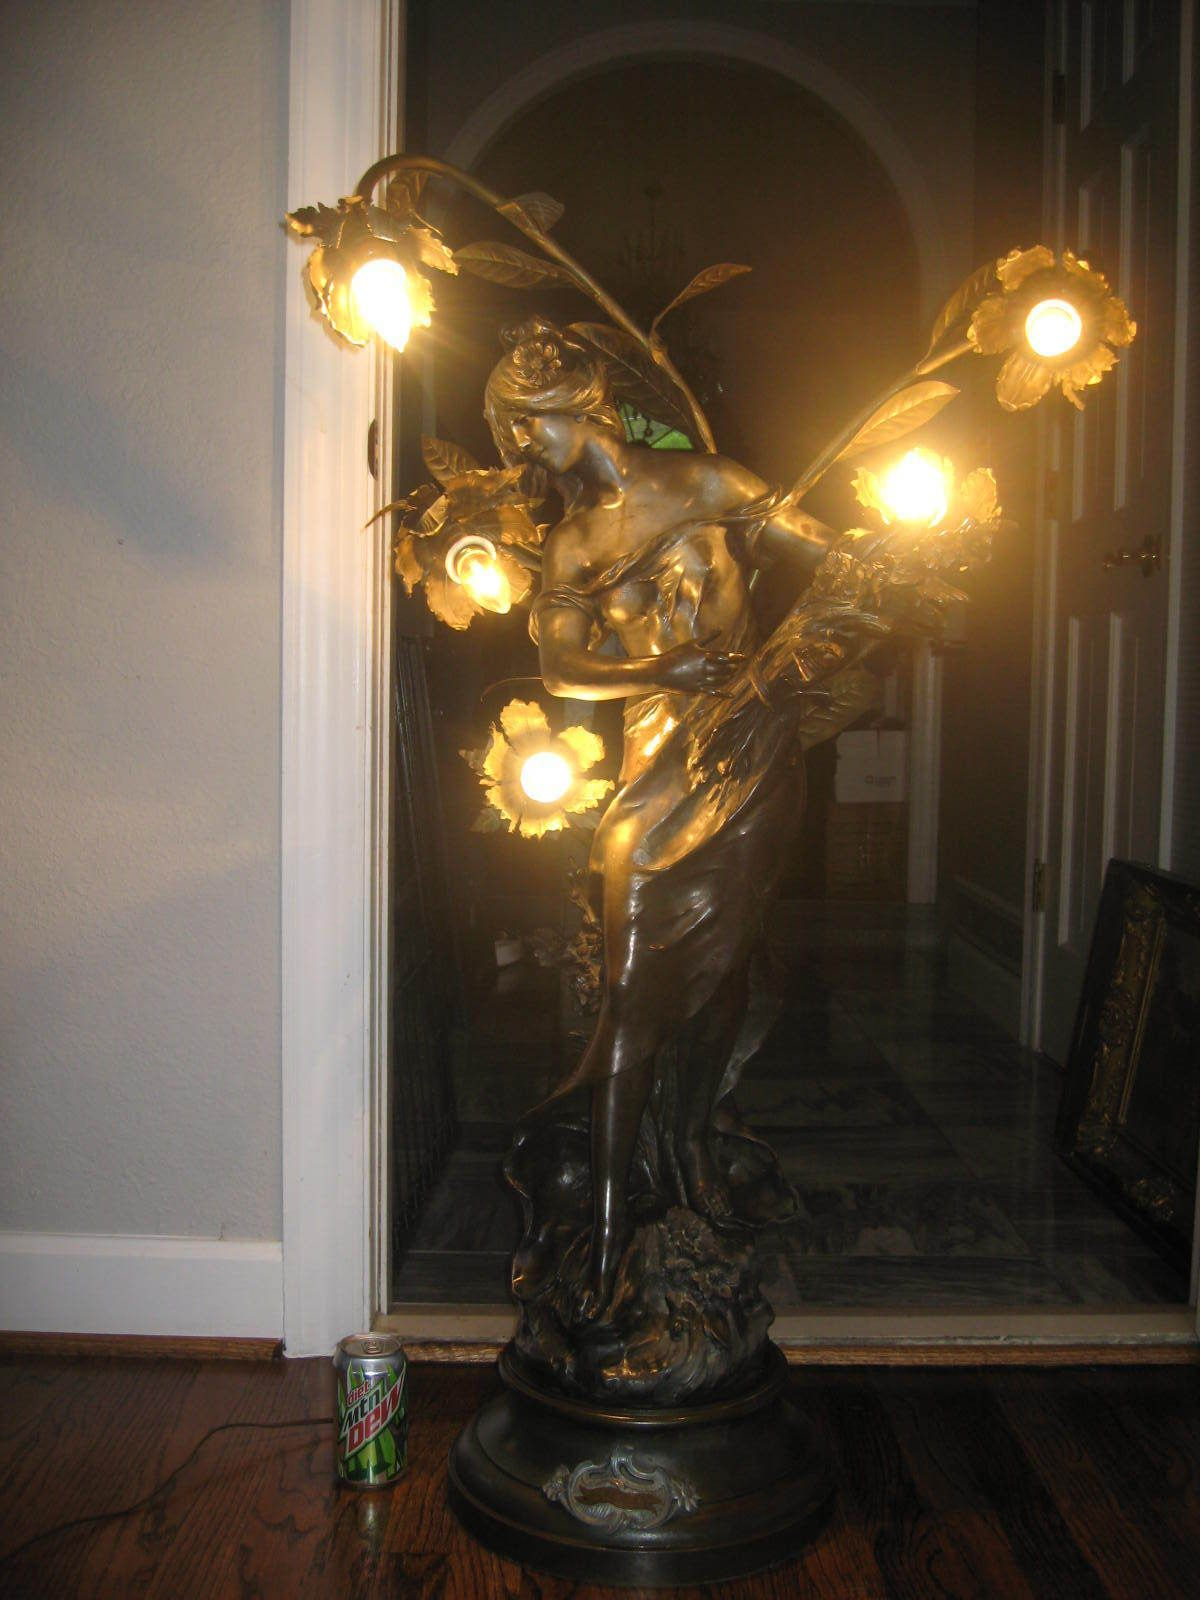 Vintage Art Nouveau French Lady Figural Newel Post Spelter Lamp Huge Ebay Glass Photography Victorian Art Lamp